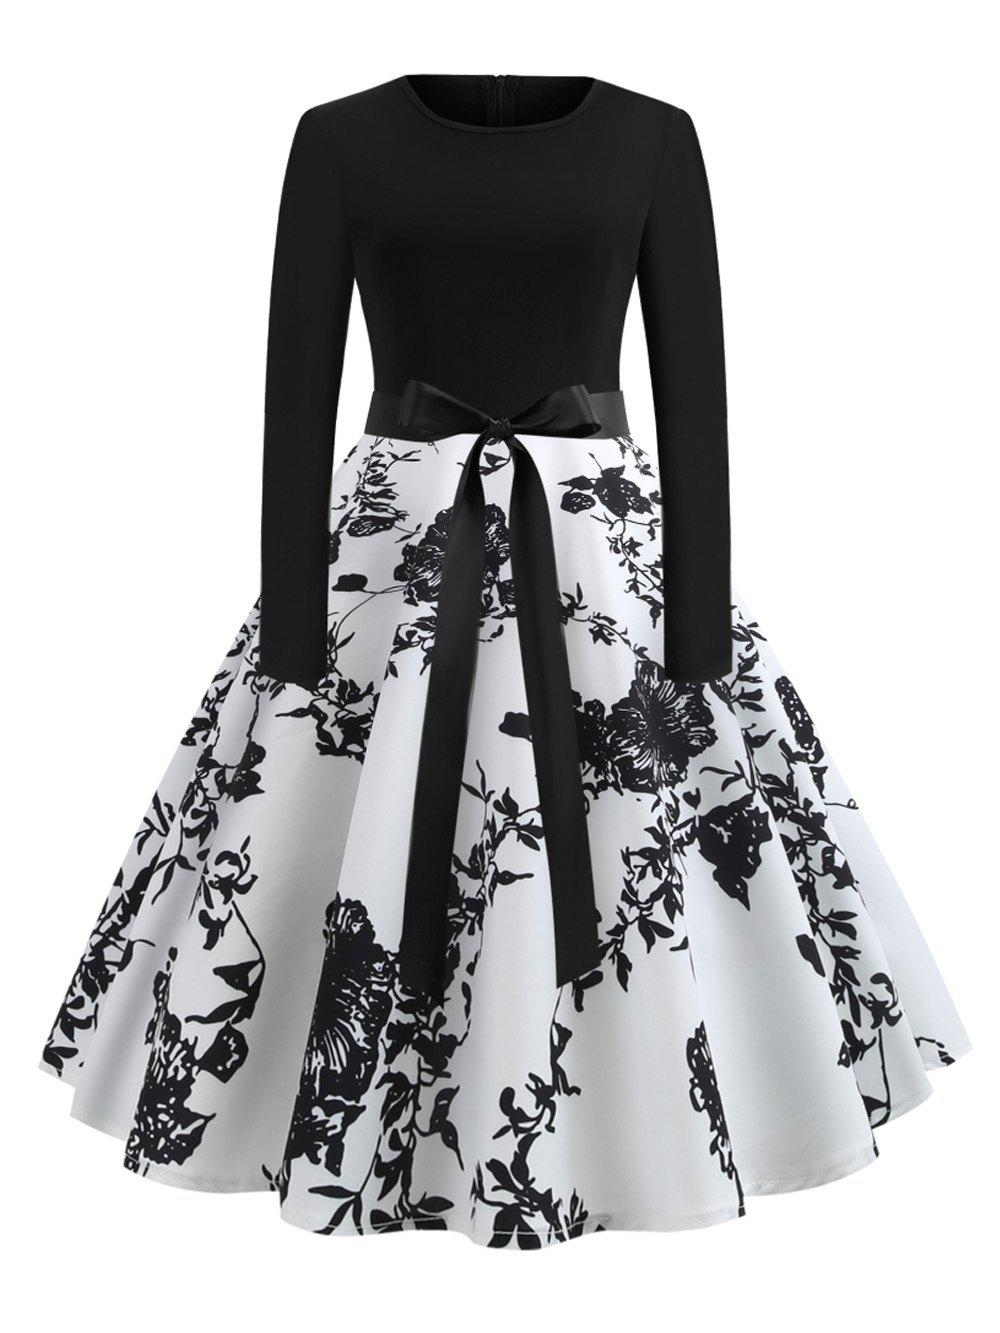 Fancy Women's Sexy Round Neck Vintage Style Pinup Swing Fashion Printing Evening Party Rockabilly Retro Dress